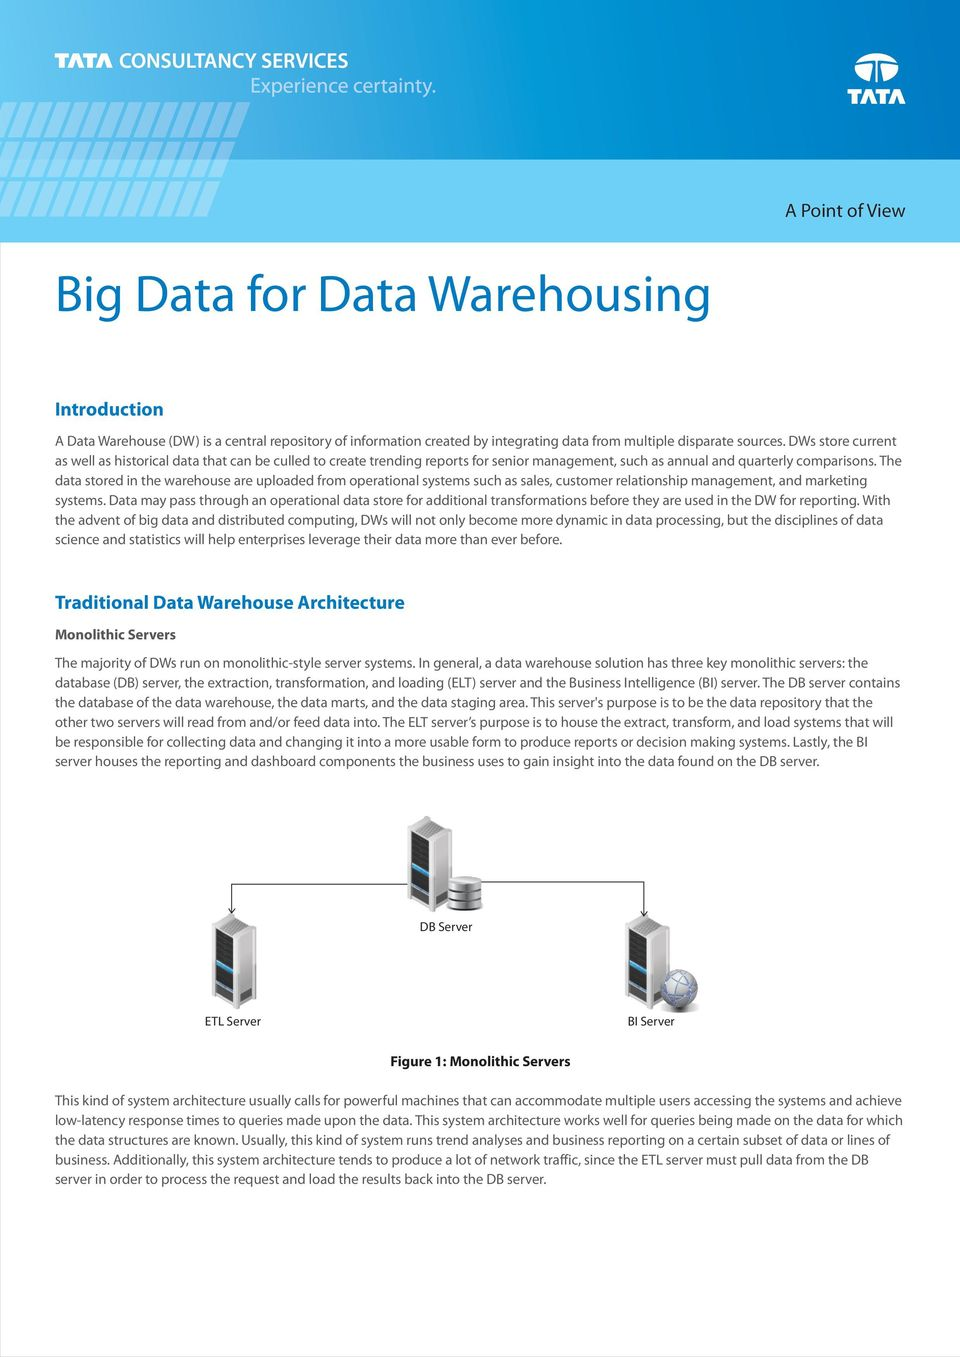 The data stored in the warehouse are uploaded from operational systems such as sales, customer relationship management, and marketing systems.